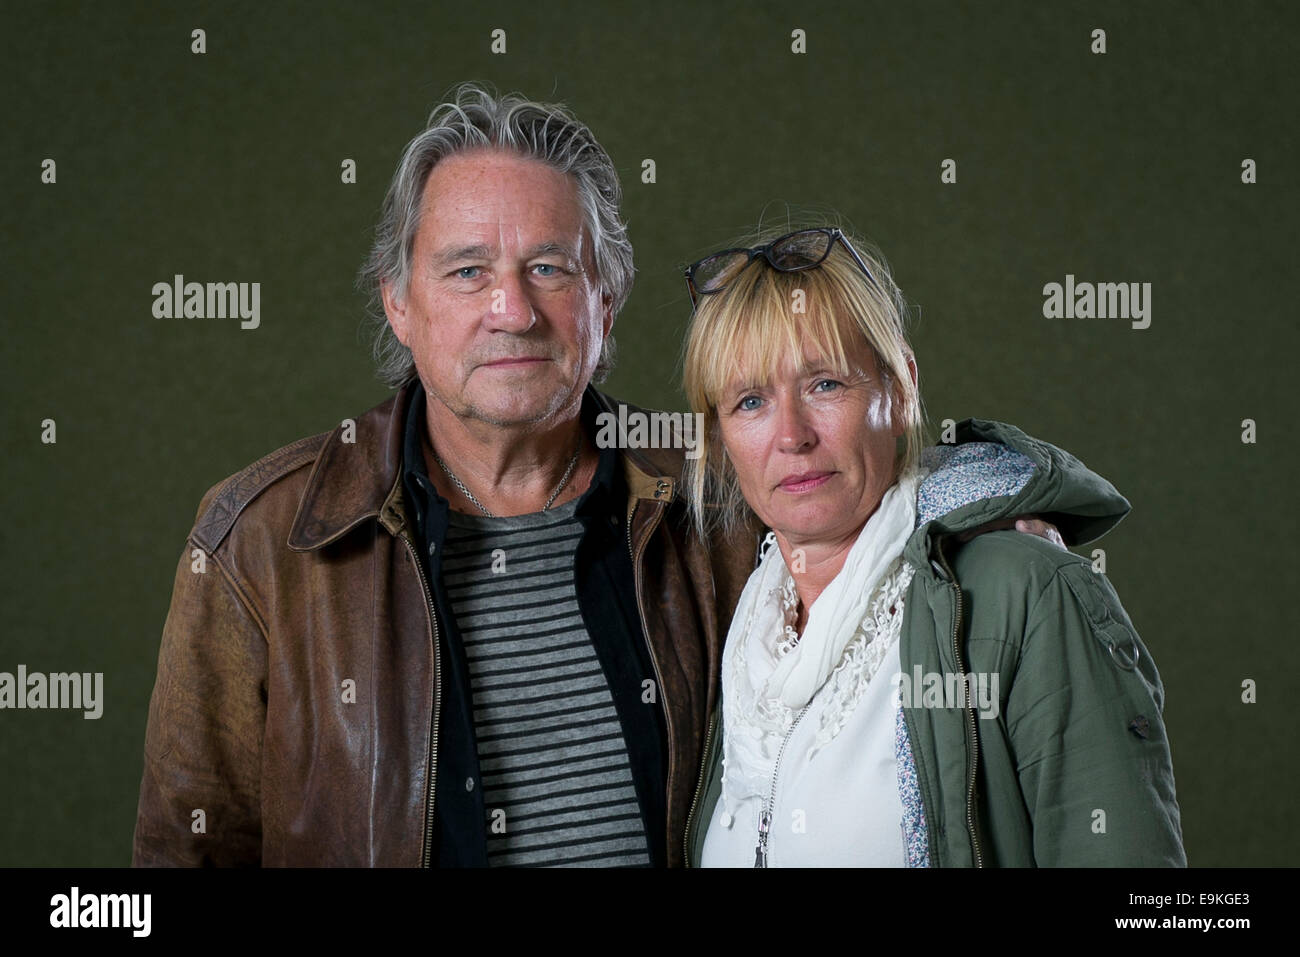 Authors Cilla and Rolf Bšorjlind appears at the Edinburgh International Book Festival. - Stock Image